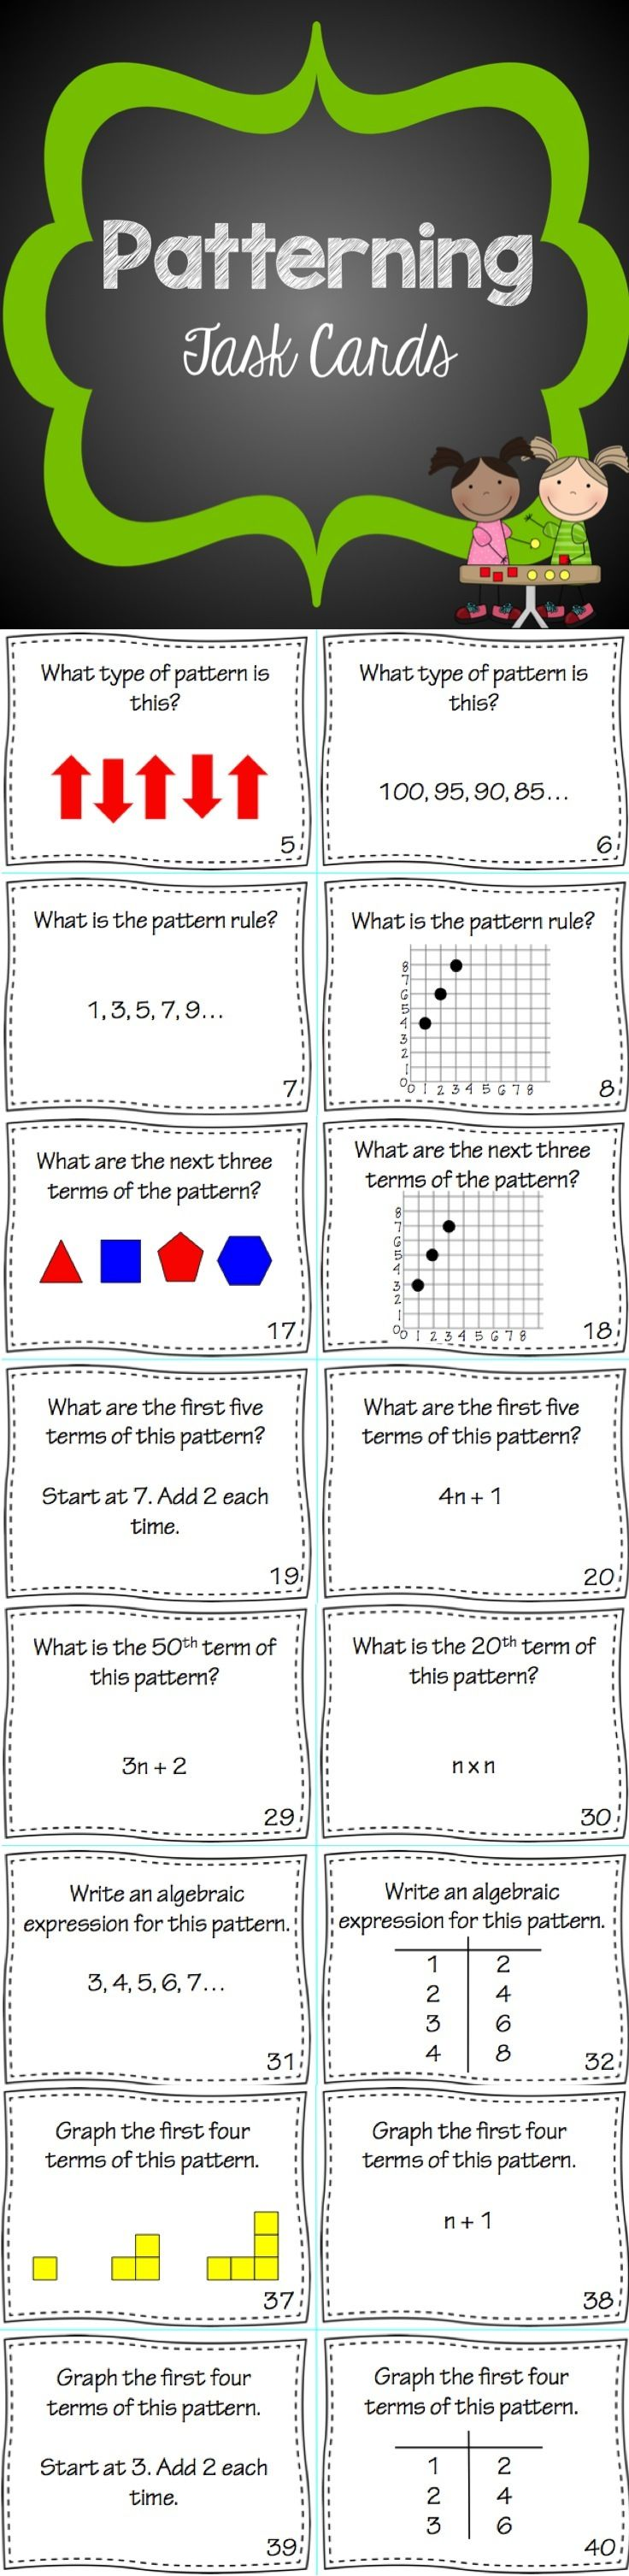 This Set Of 40 Patterning Task Cards Reviews The Concepts Of Pattern Rules Finding The Next Term In A Pattern Patterns Task Cards Education Math Math Patterns [ 3013 x 736 Pixel ]